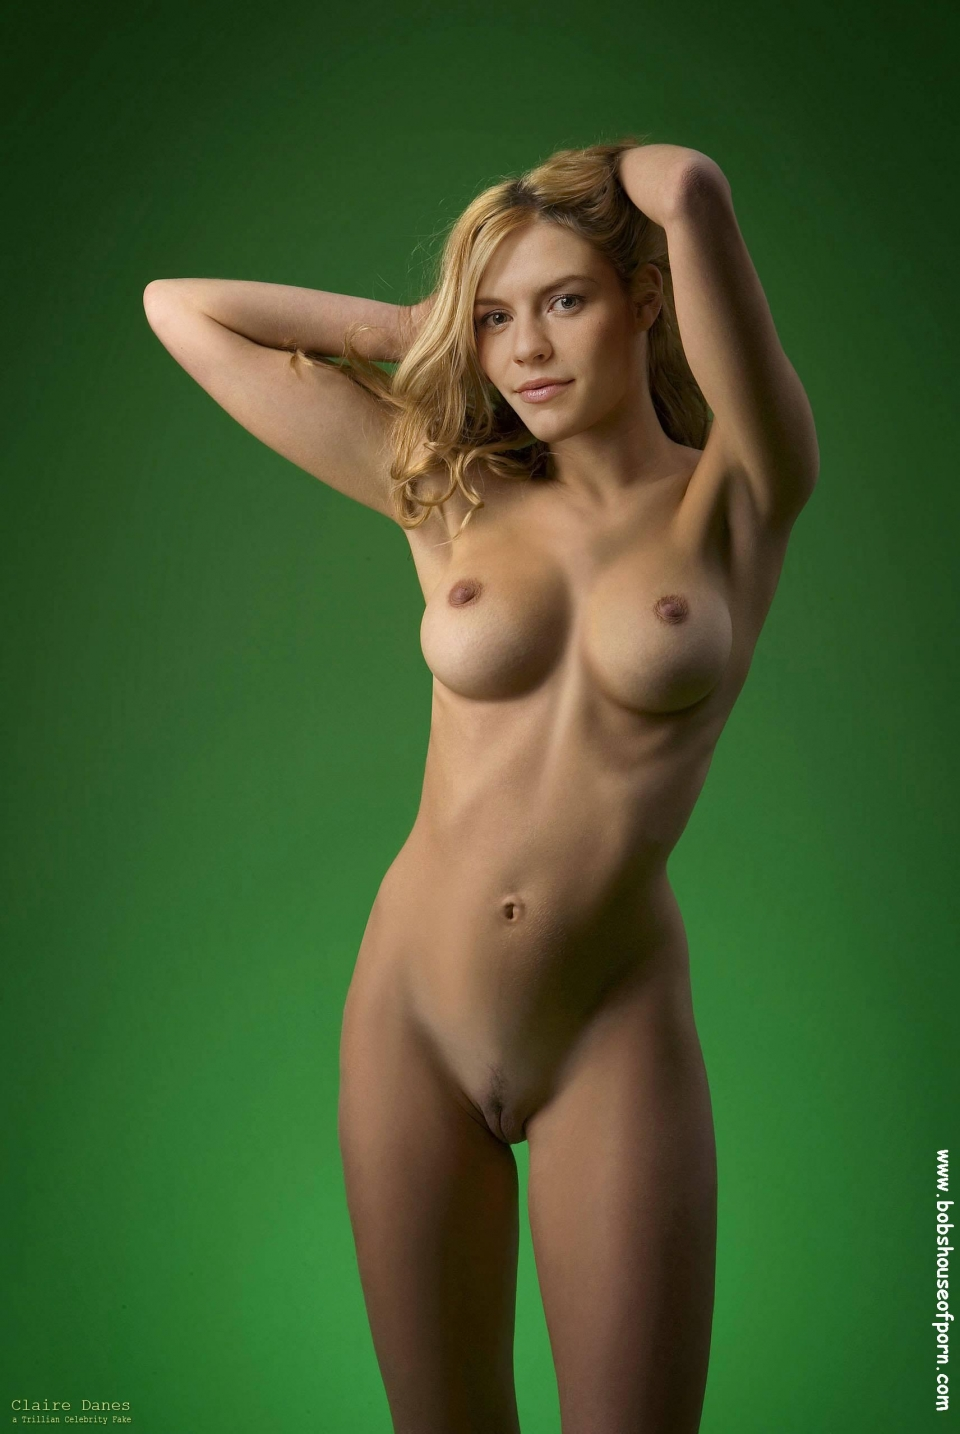 sexibl.com Claire danes nude naked fakes 300X448 size